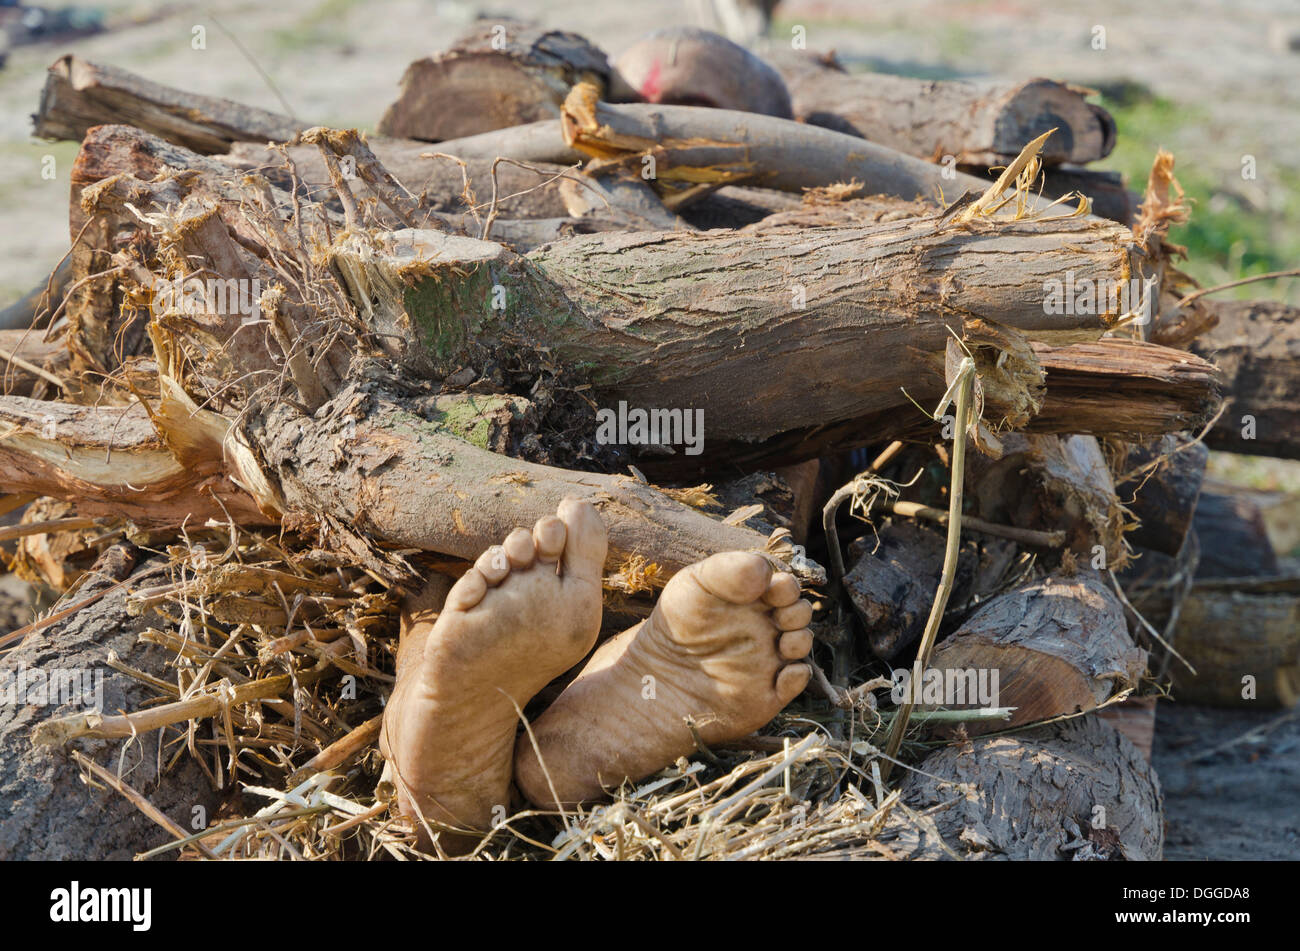 Putting a dead body on firewood on the banks of river Yamuna as part of a cremation ceremony, Vrindavan, India, Stock Photo